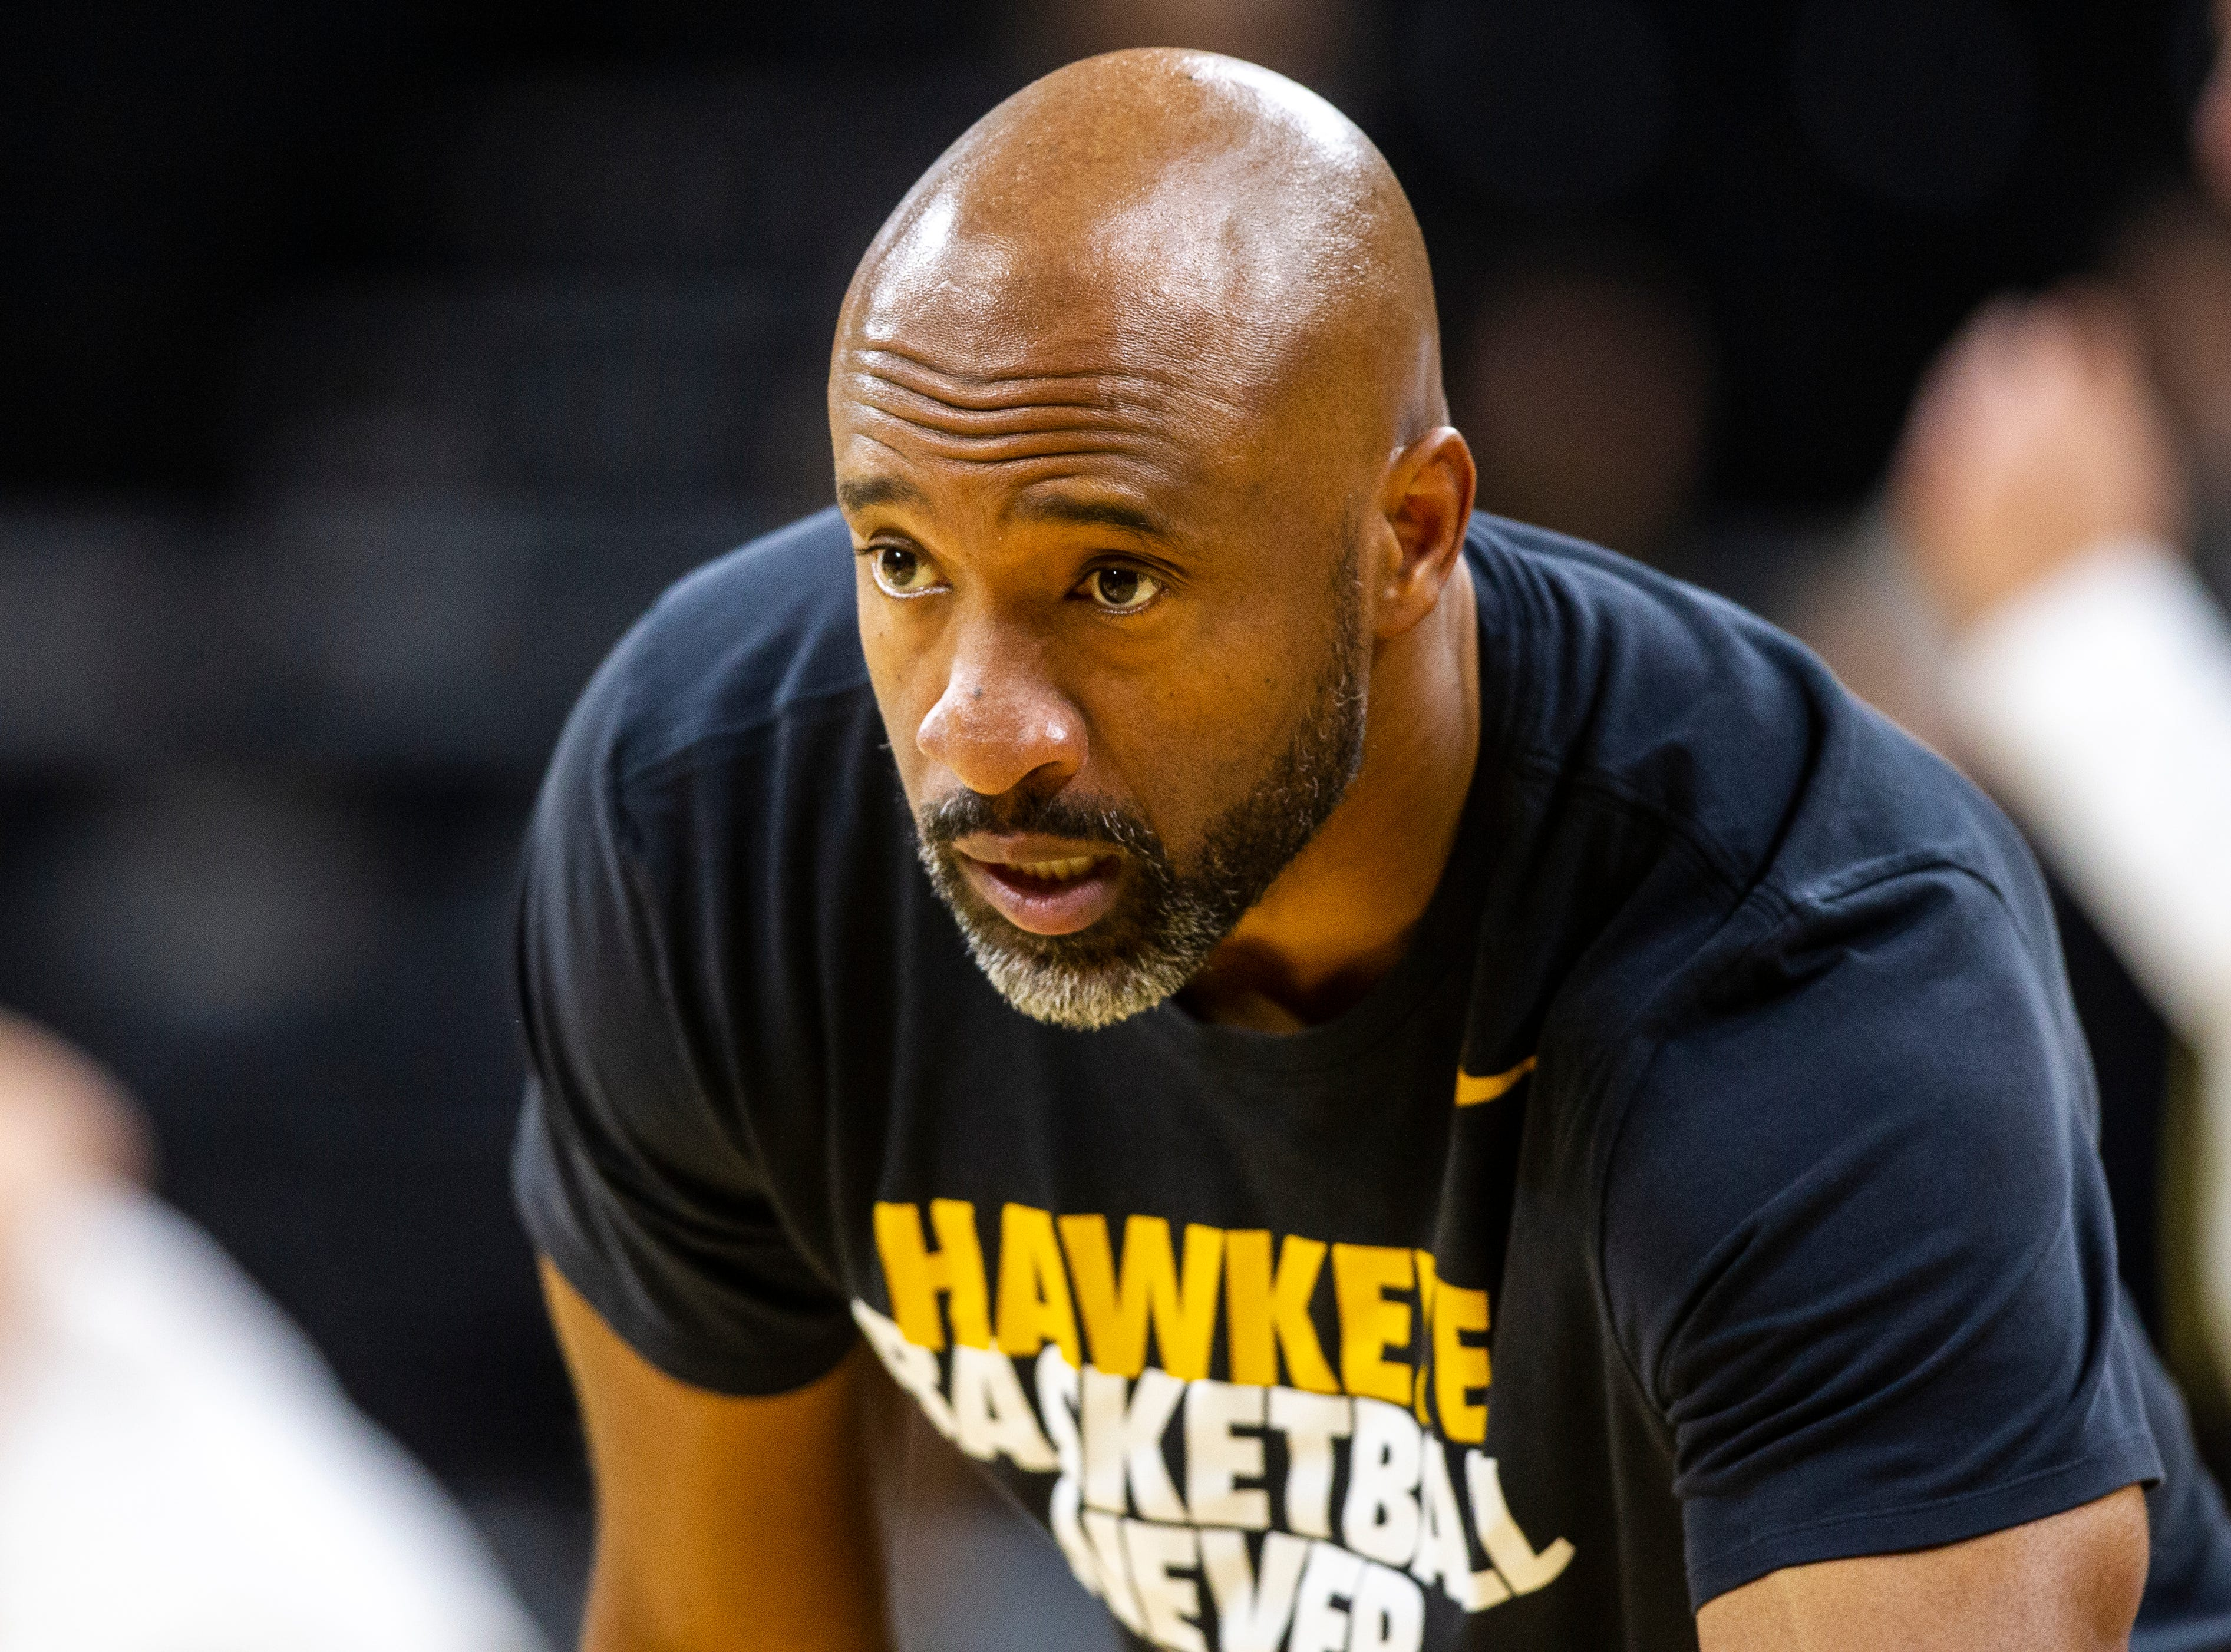 Iowa assistant coach Andrew Francis is seen before an NCAA men's basketball game on Wednesday, Nov. 21, 2018, at Carver-Hawkeye Arena in Iowa City.